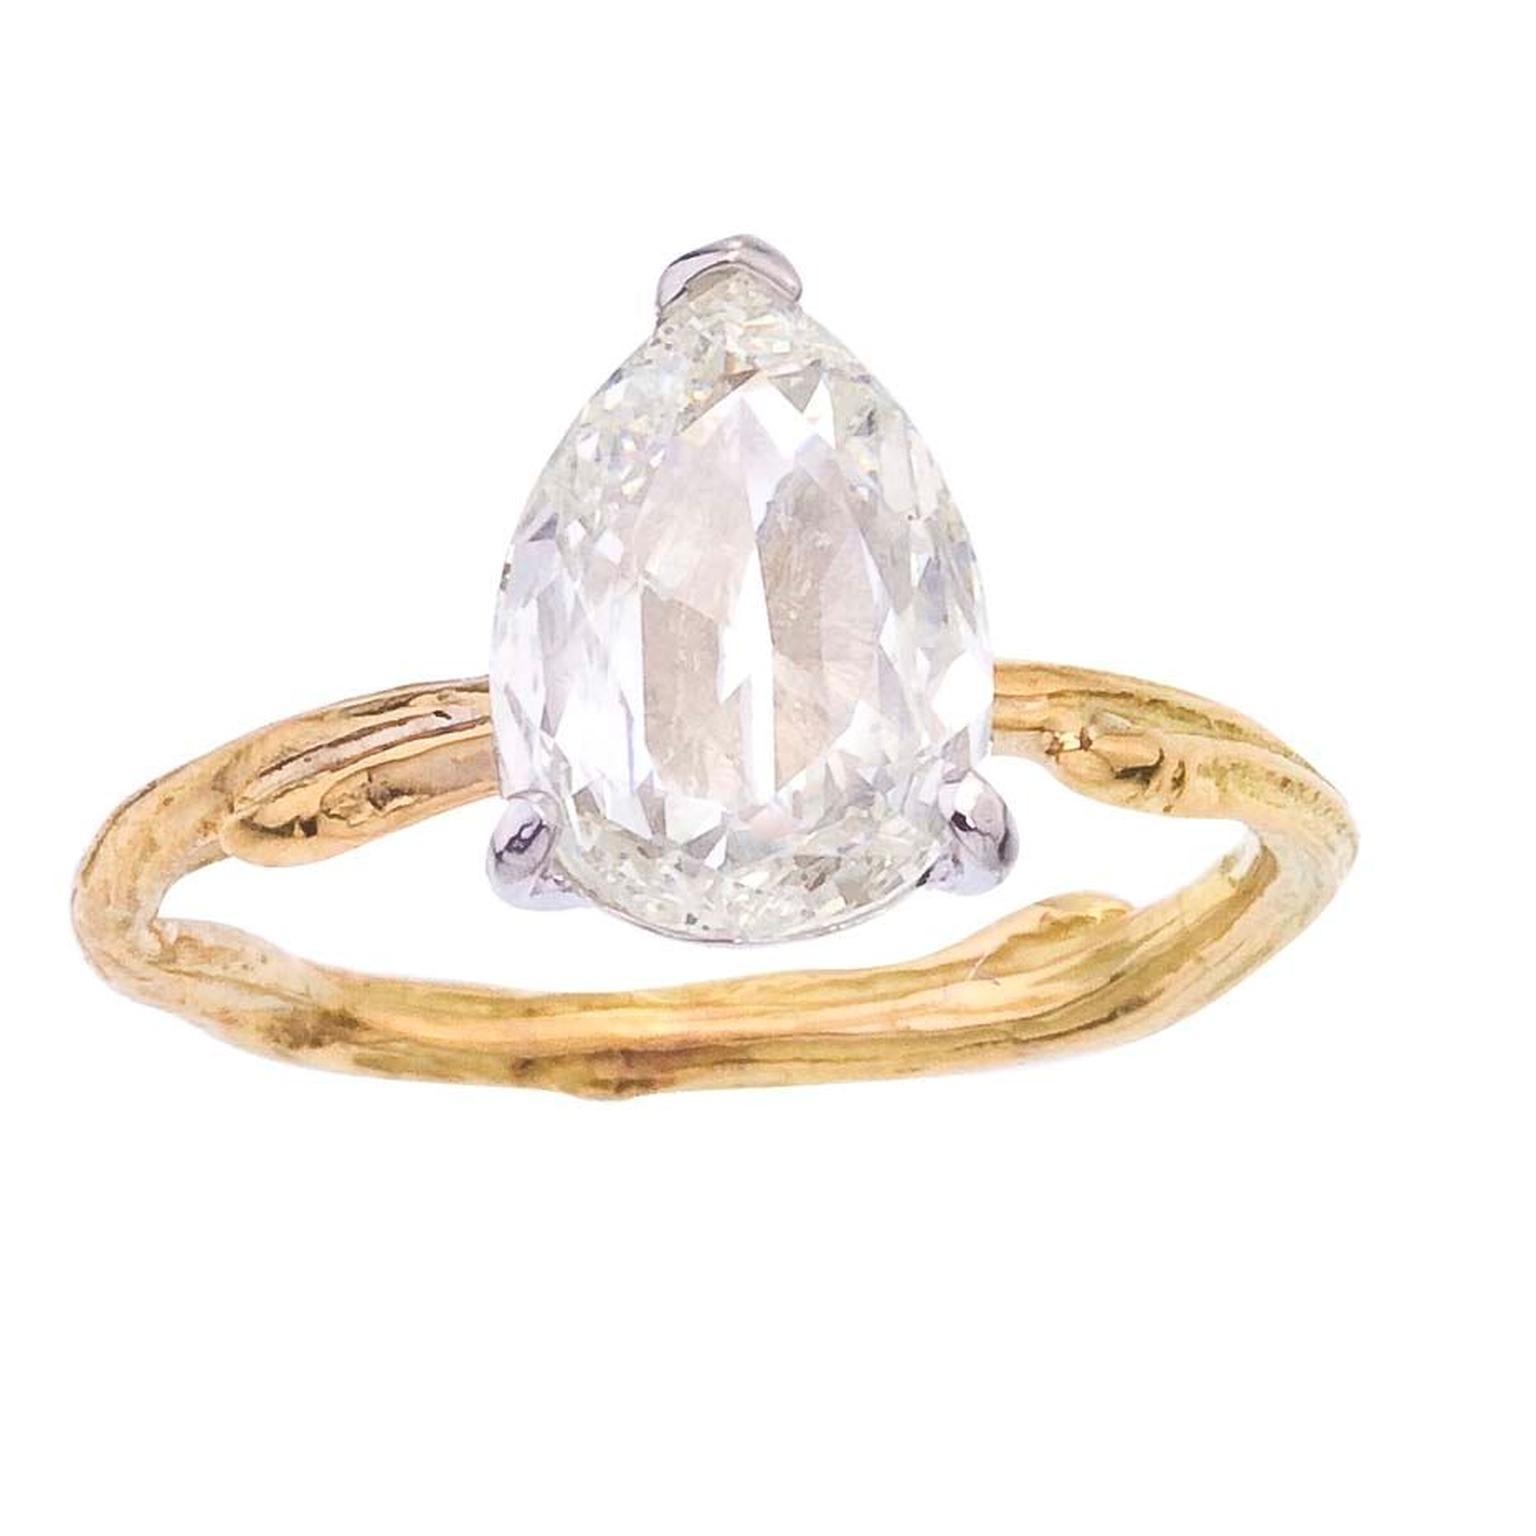 Barbara Michelle Jacobs pear-shaped diamond engagement ring, available with either a recycled yellow, white or rose gold twig band.